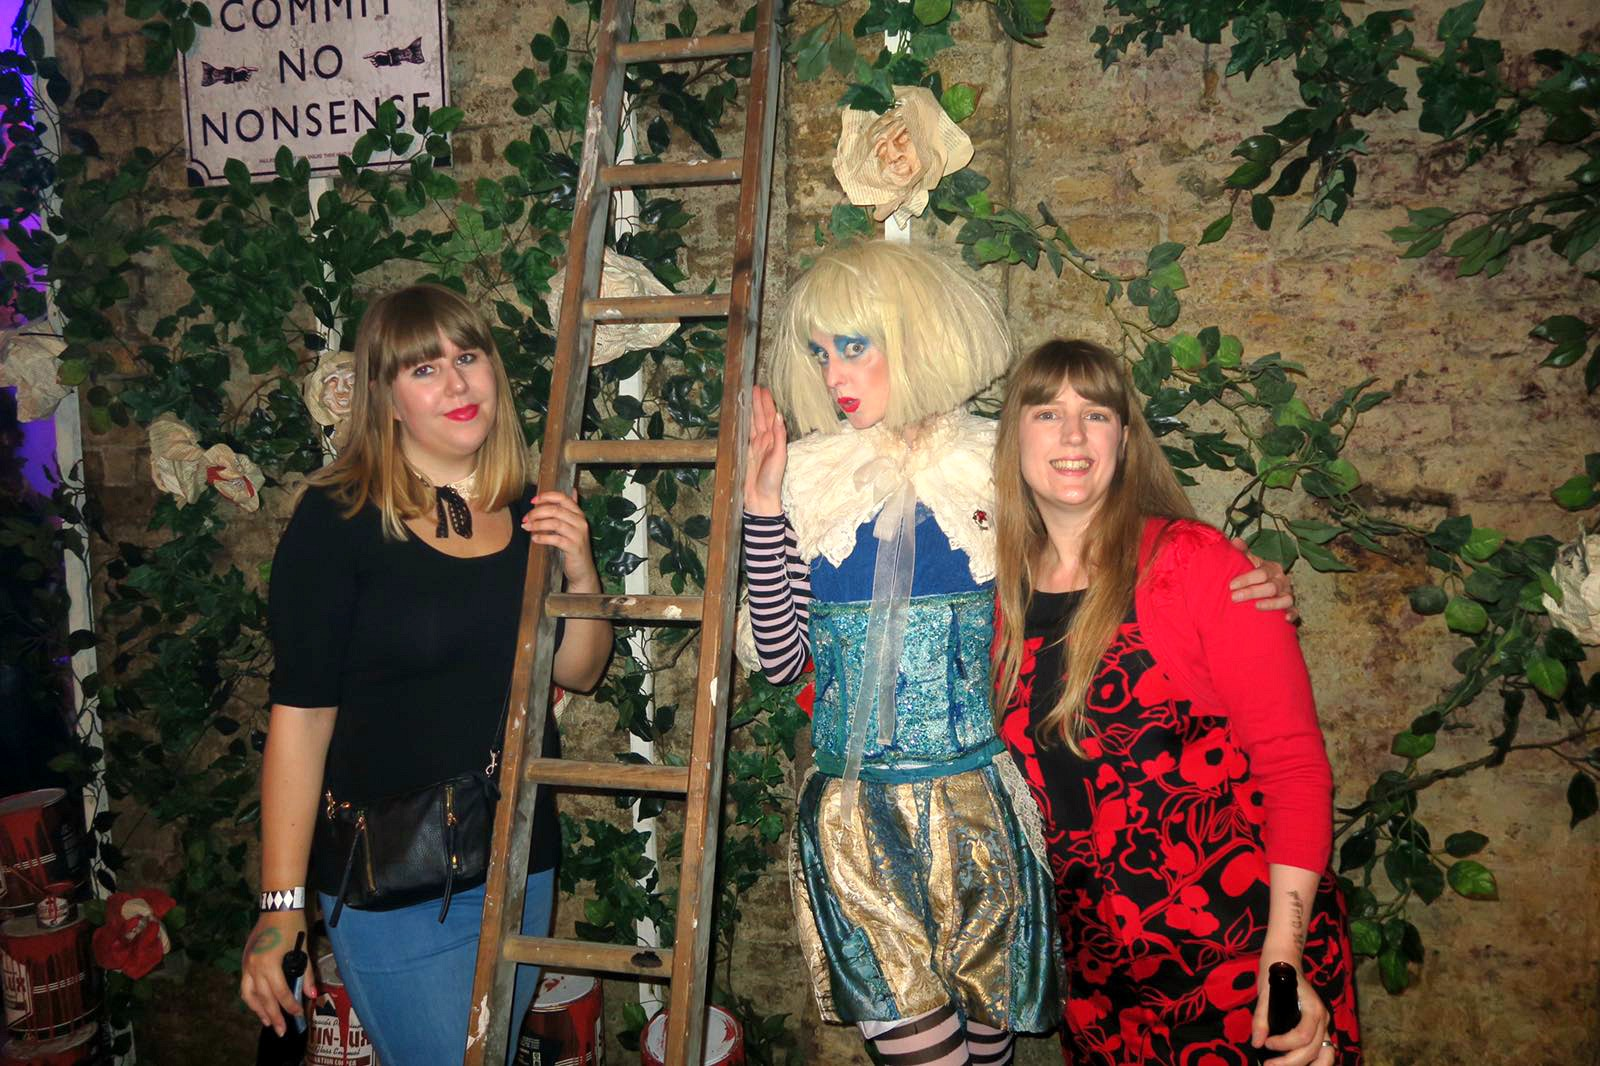 Formidable Joy | Formidable Joy Blog | Lifestyle | Alice's Adventures Underground | Alice In Wonderland | London | The Vaults